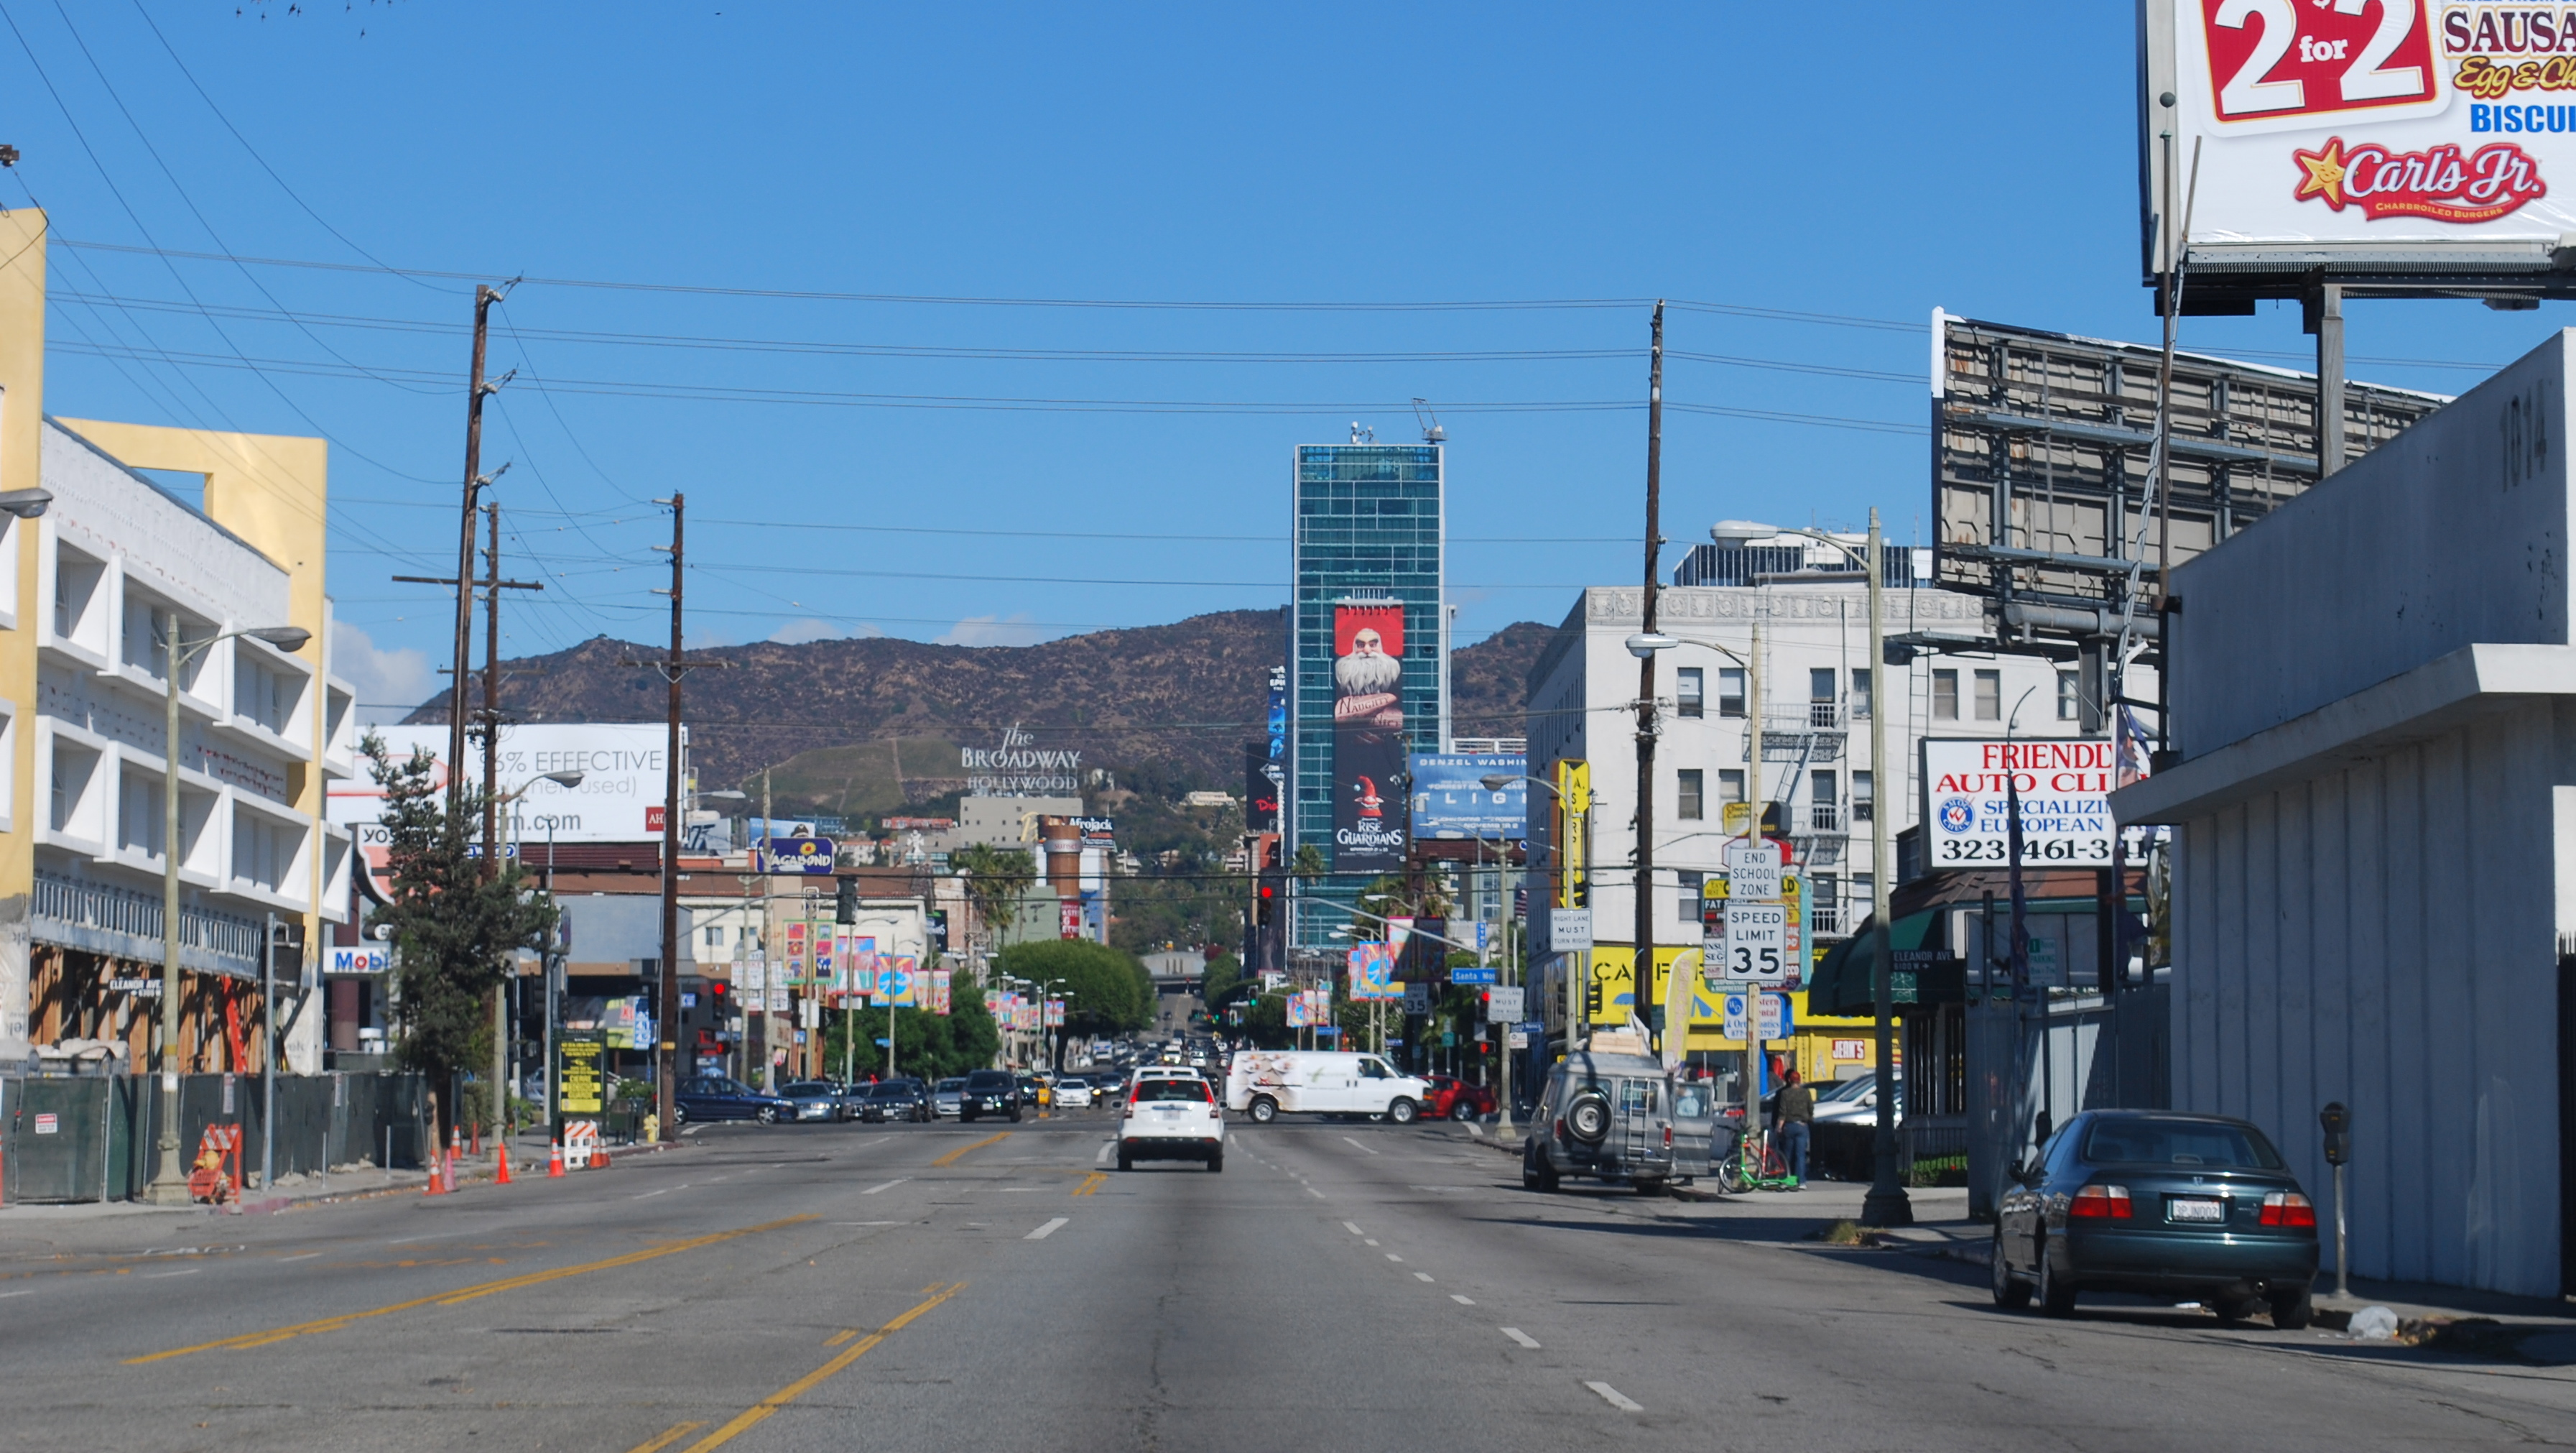 A Short Visit in Los Angeles – A Reflection onWalking